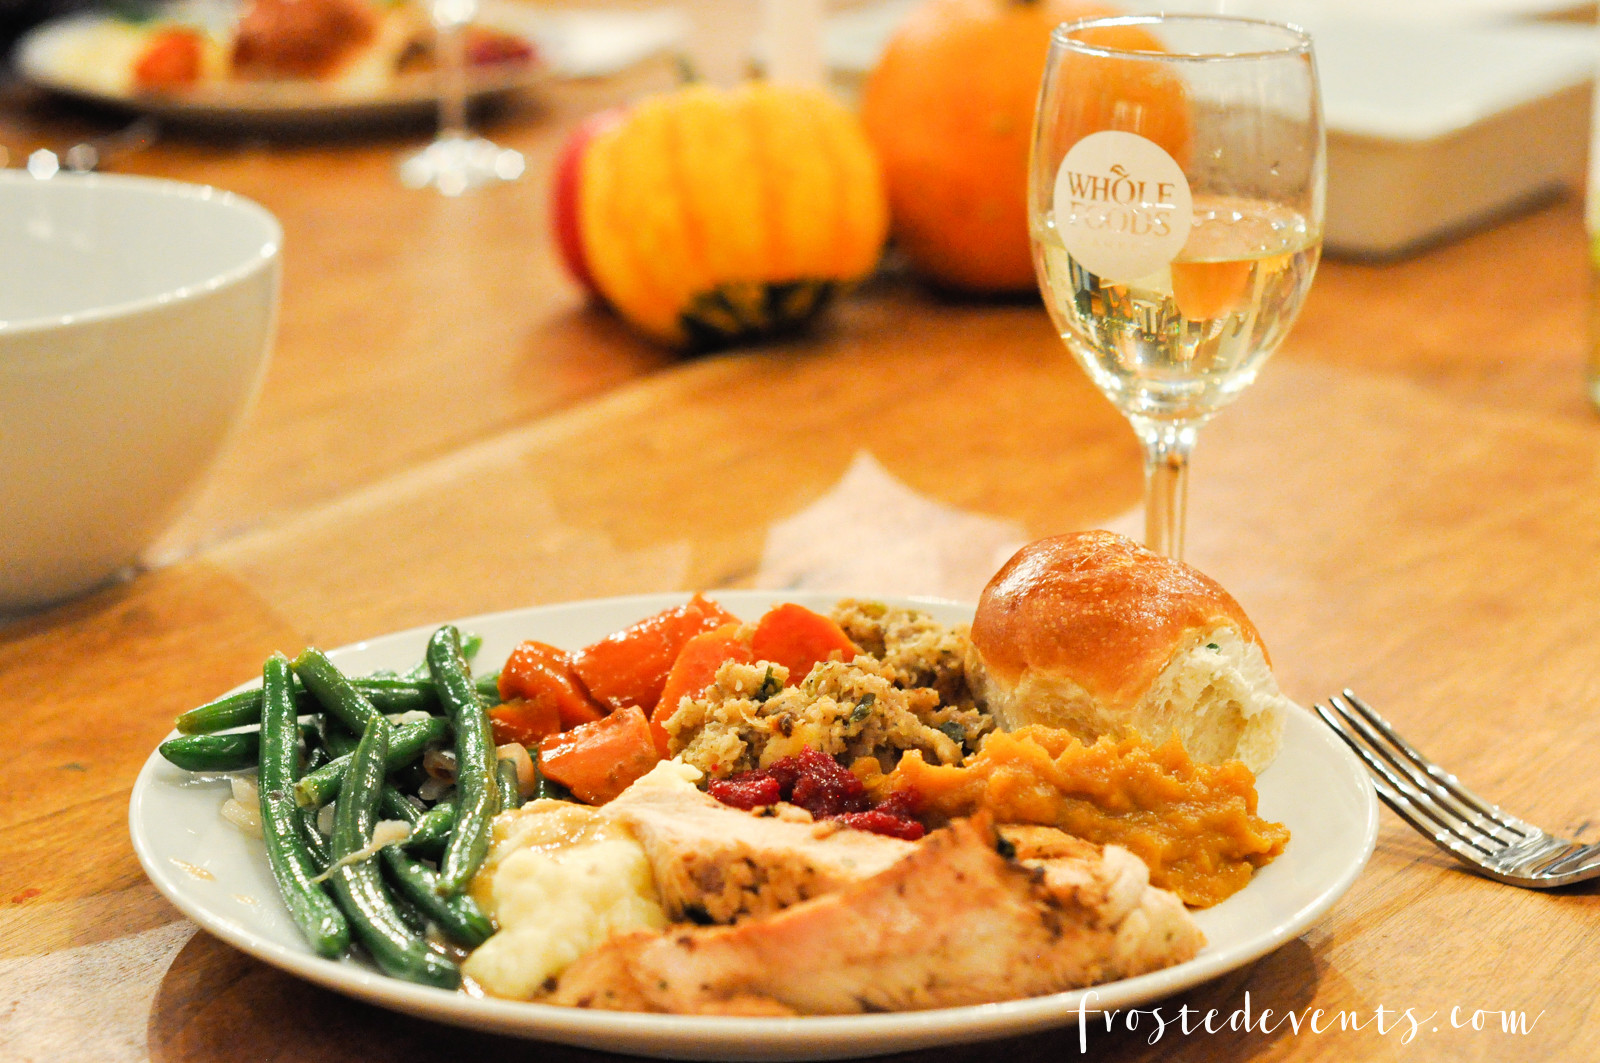 Whole Food Thanksgiving Dinner Order  Thanksgiving Dinner Turkey Tablescape and More with Whole